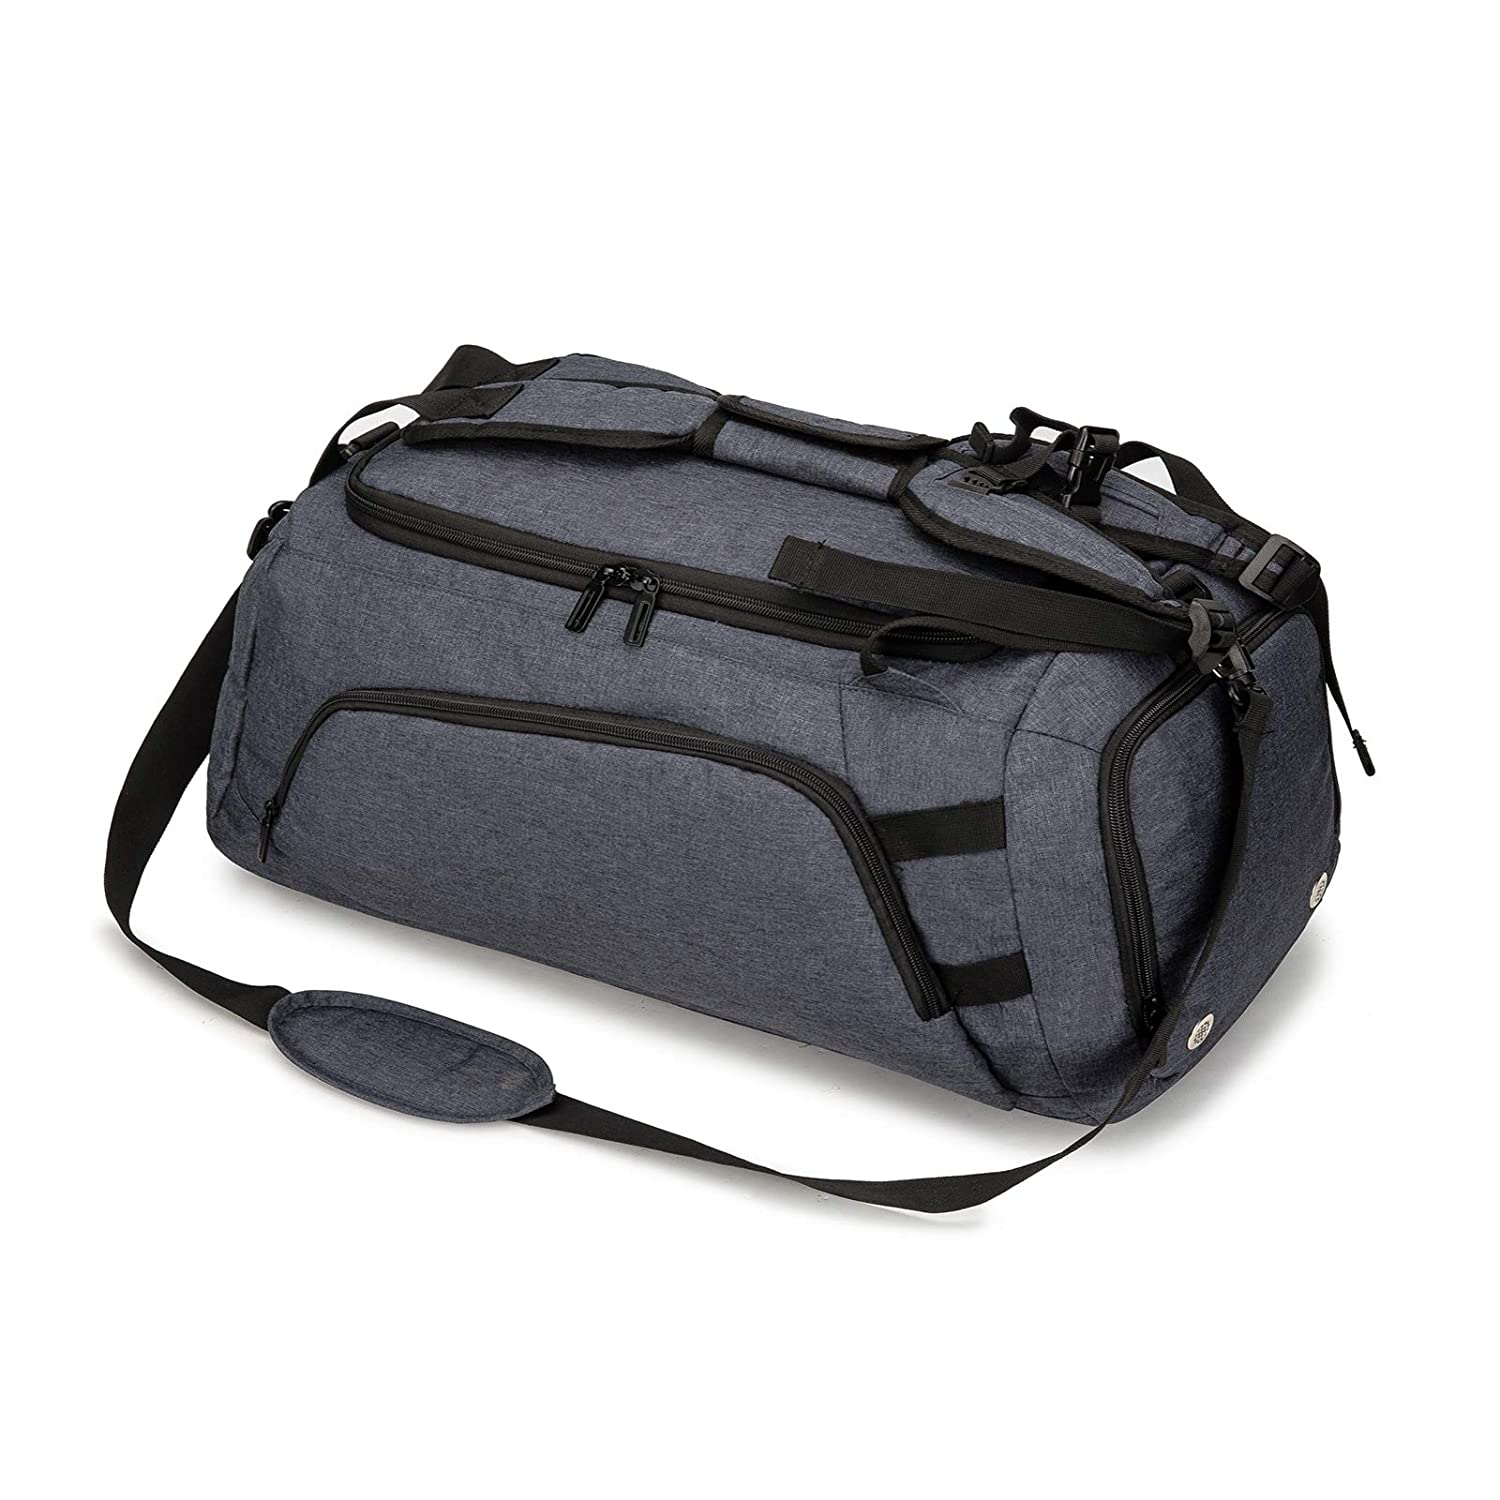 ACECHA Sports Gym Bag with Shoes Compartment Travel Duffel Bag for Men Black